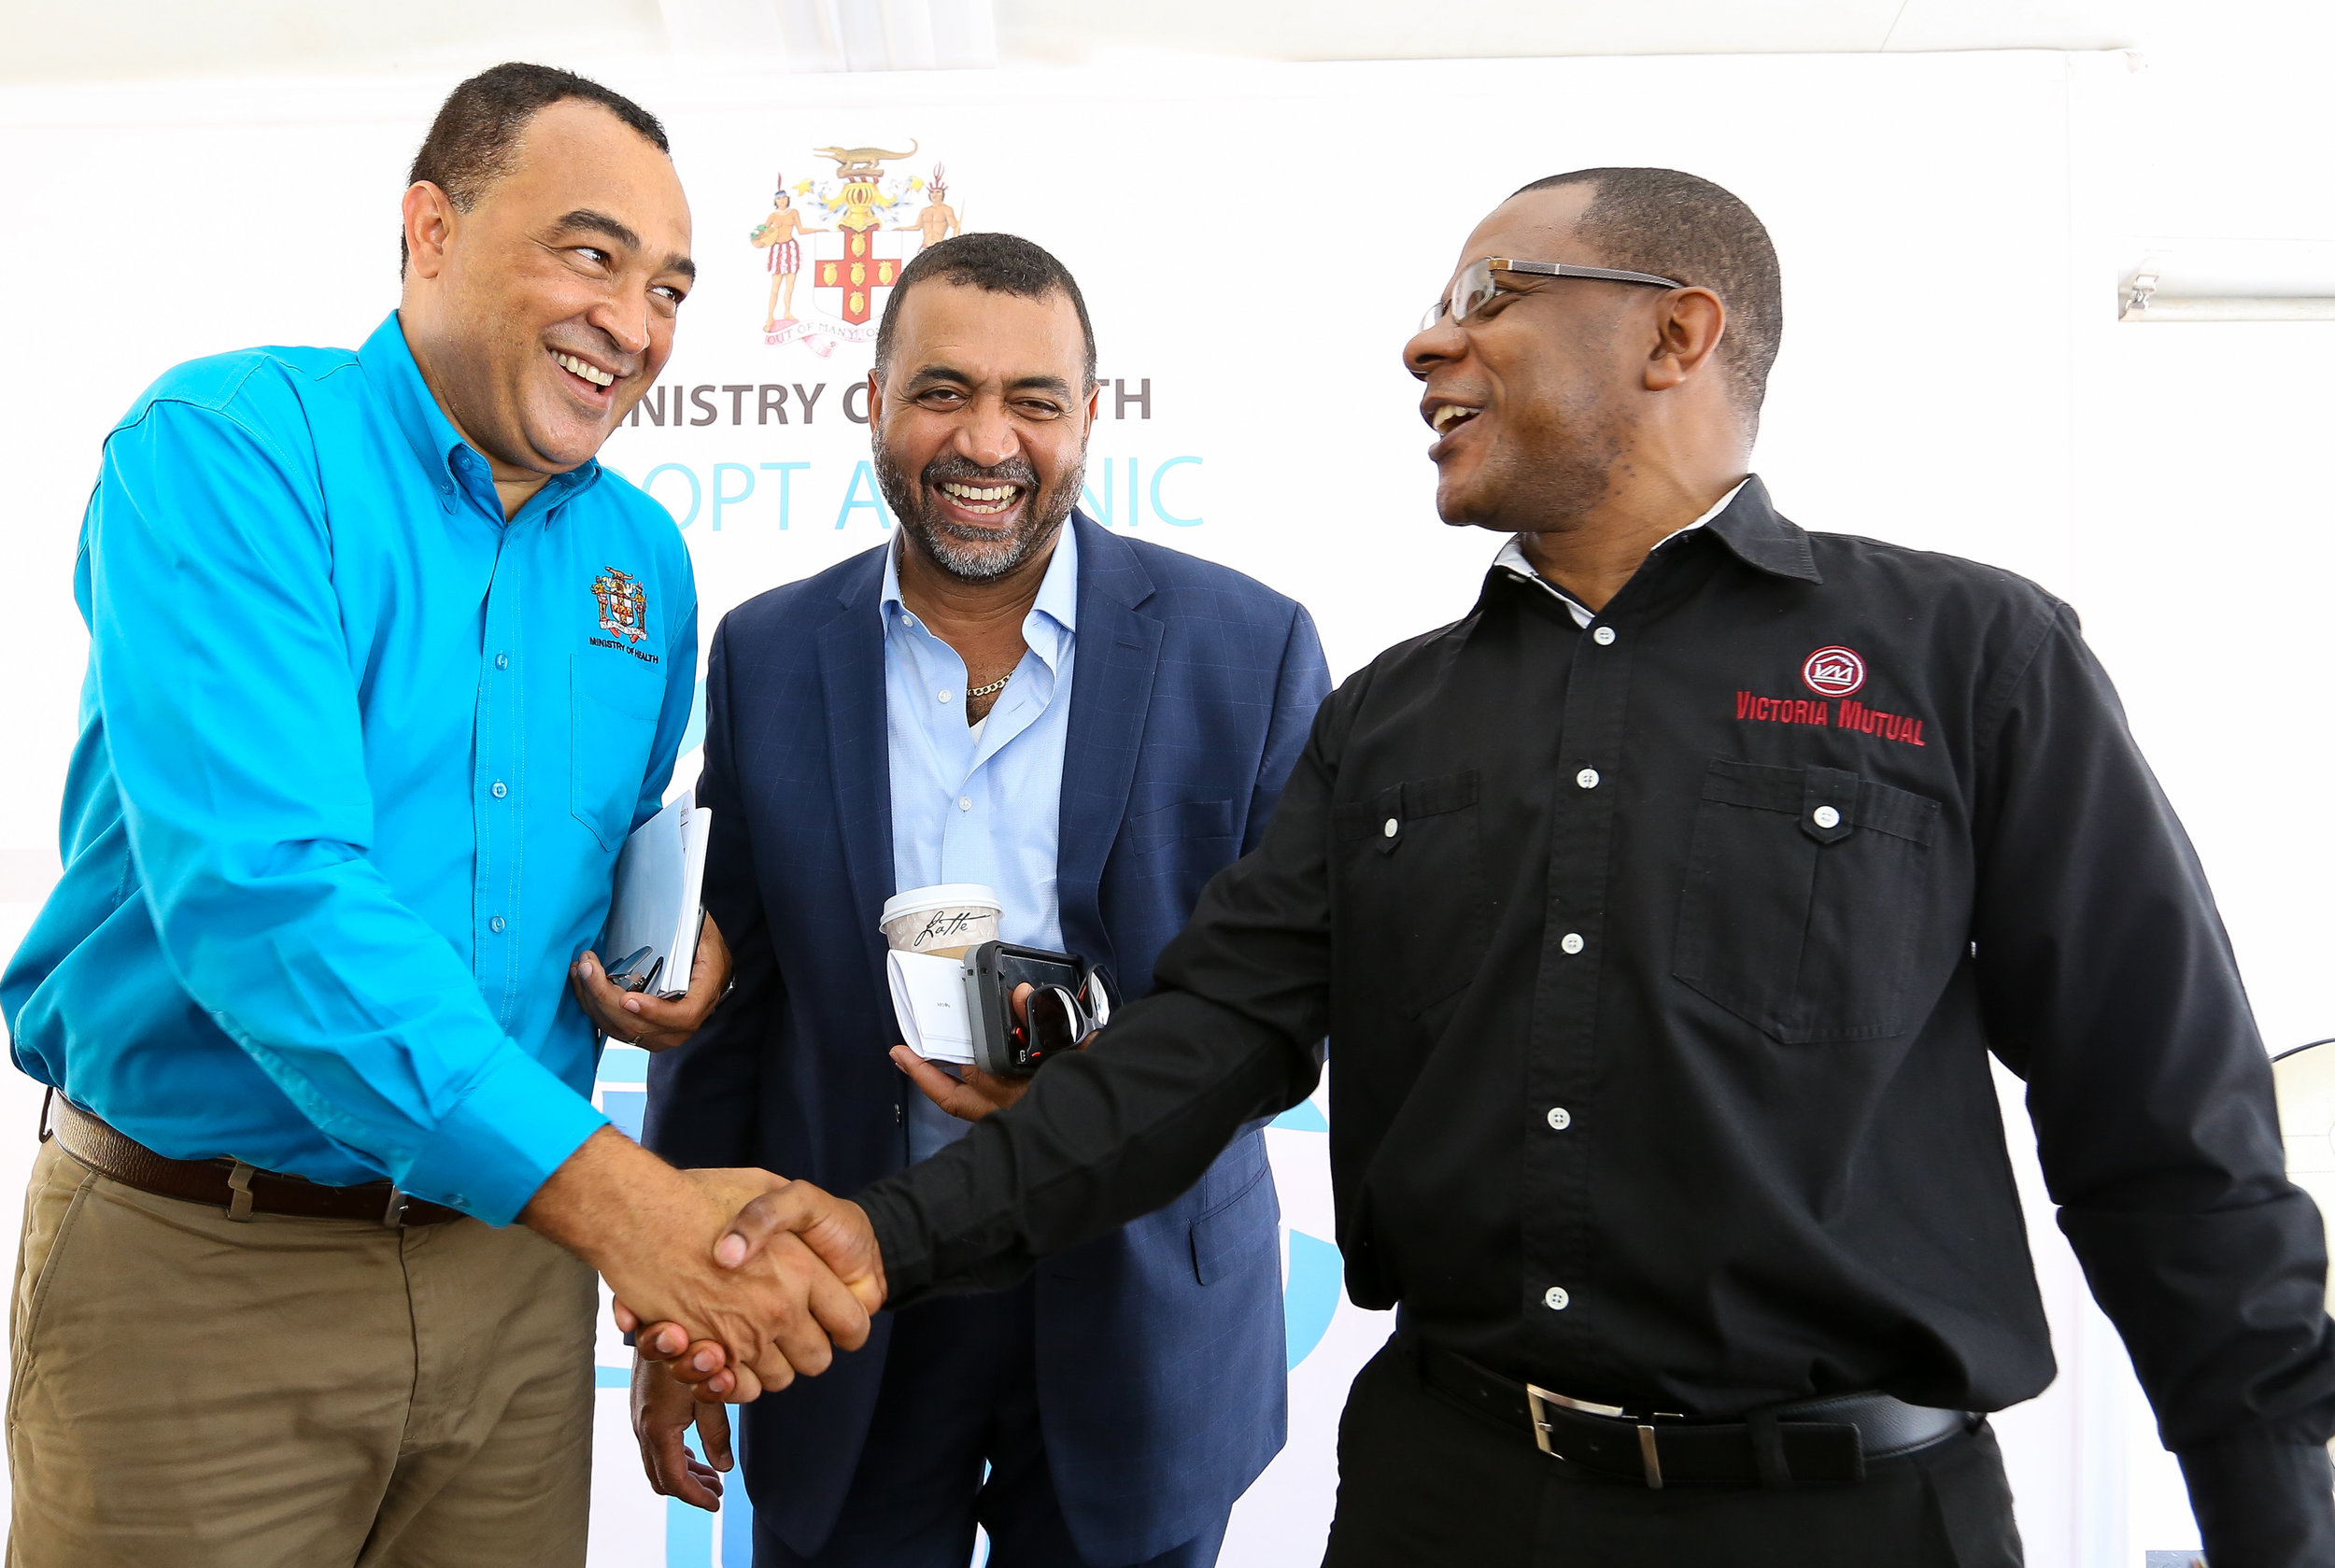 Jamaica's Health Minister Dr. Chris Tufton (l) with chief medical officer Dr. Winston De La Haye & Victoria Mutual Building Society president and CEO Courtney Campbell